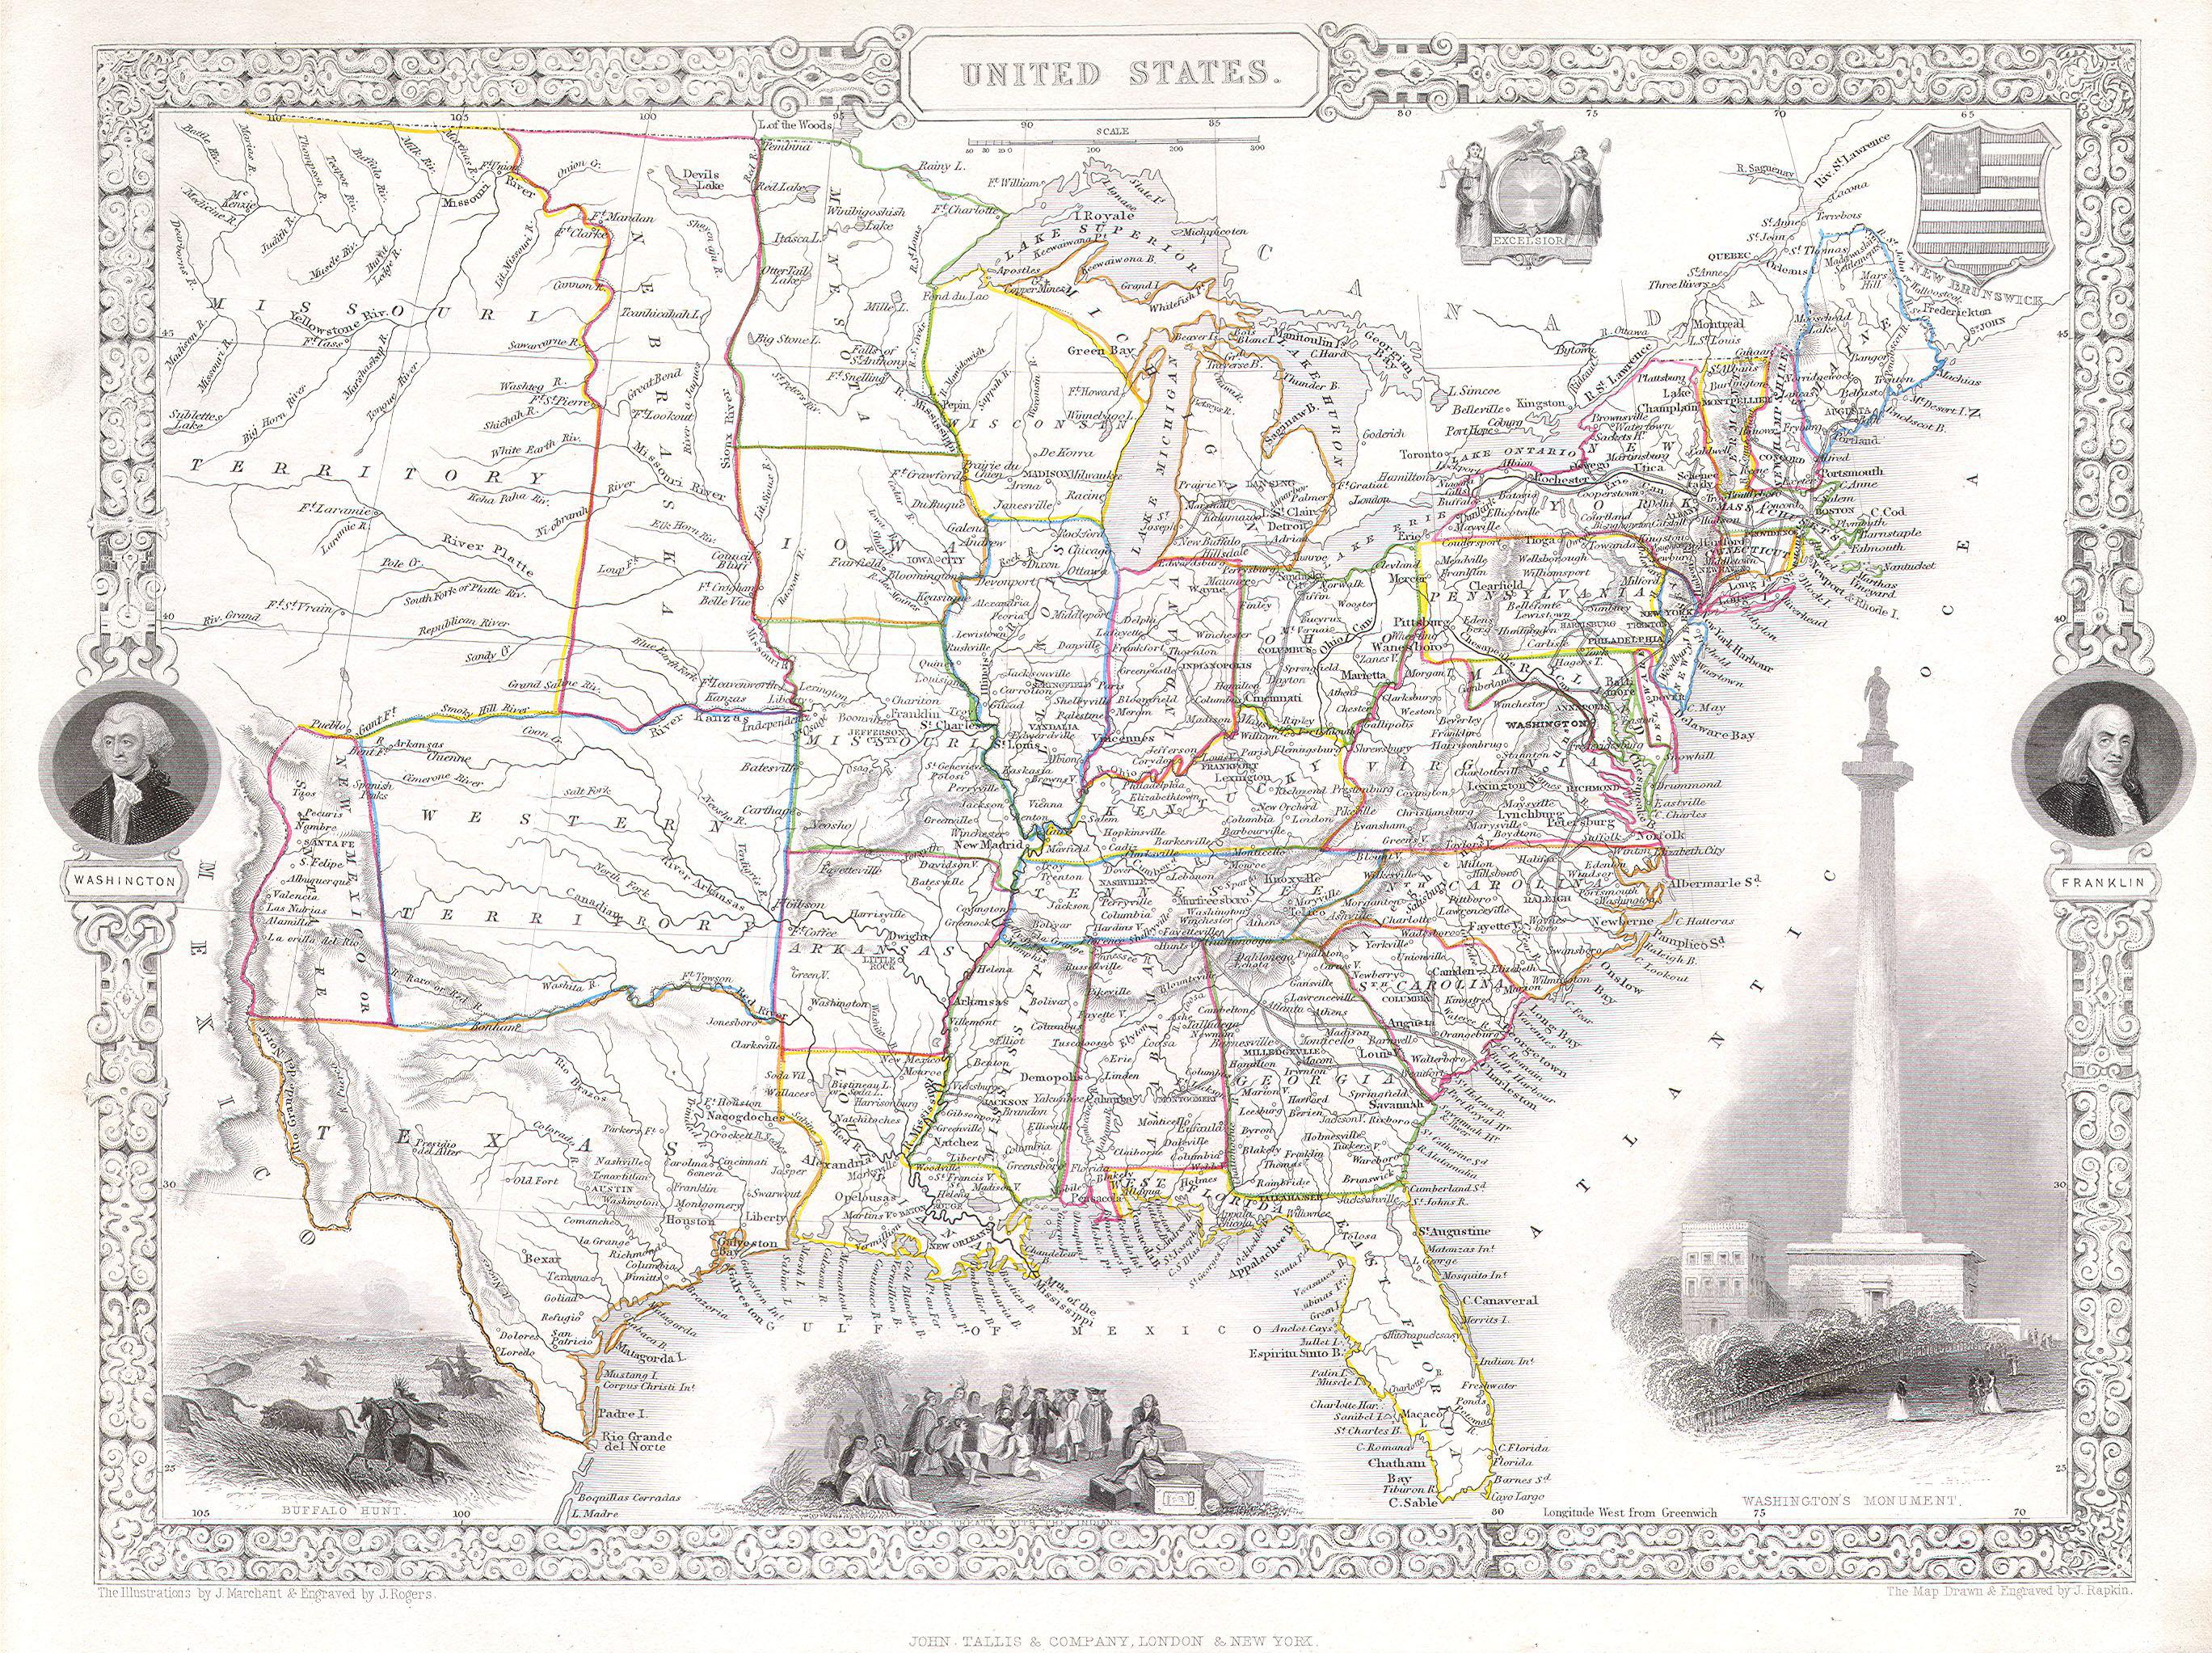 "1850 map of the United States. Covers the United States from Texas (shown at fullest extant) and Santa Fe north through the Missouri Territory to Canada and east to the Atlantic. The Trans-Mississippi region is exceptionally interesting with a fascinating (if somewhat inaccurate even at the time) depiction of the political geography. A long narrow Nebraska Territory extends to Canada. There is a large ""Western Territory"